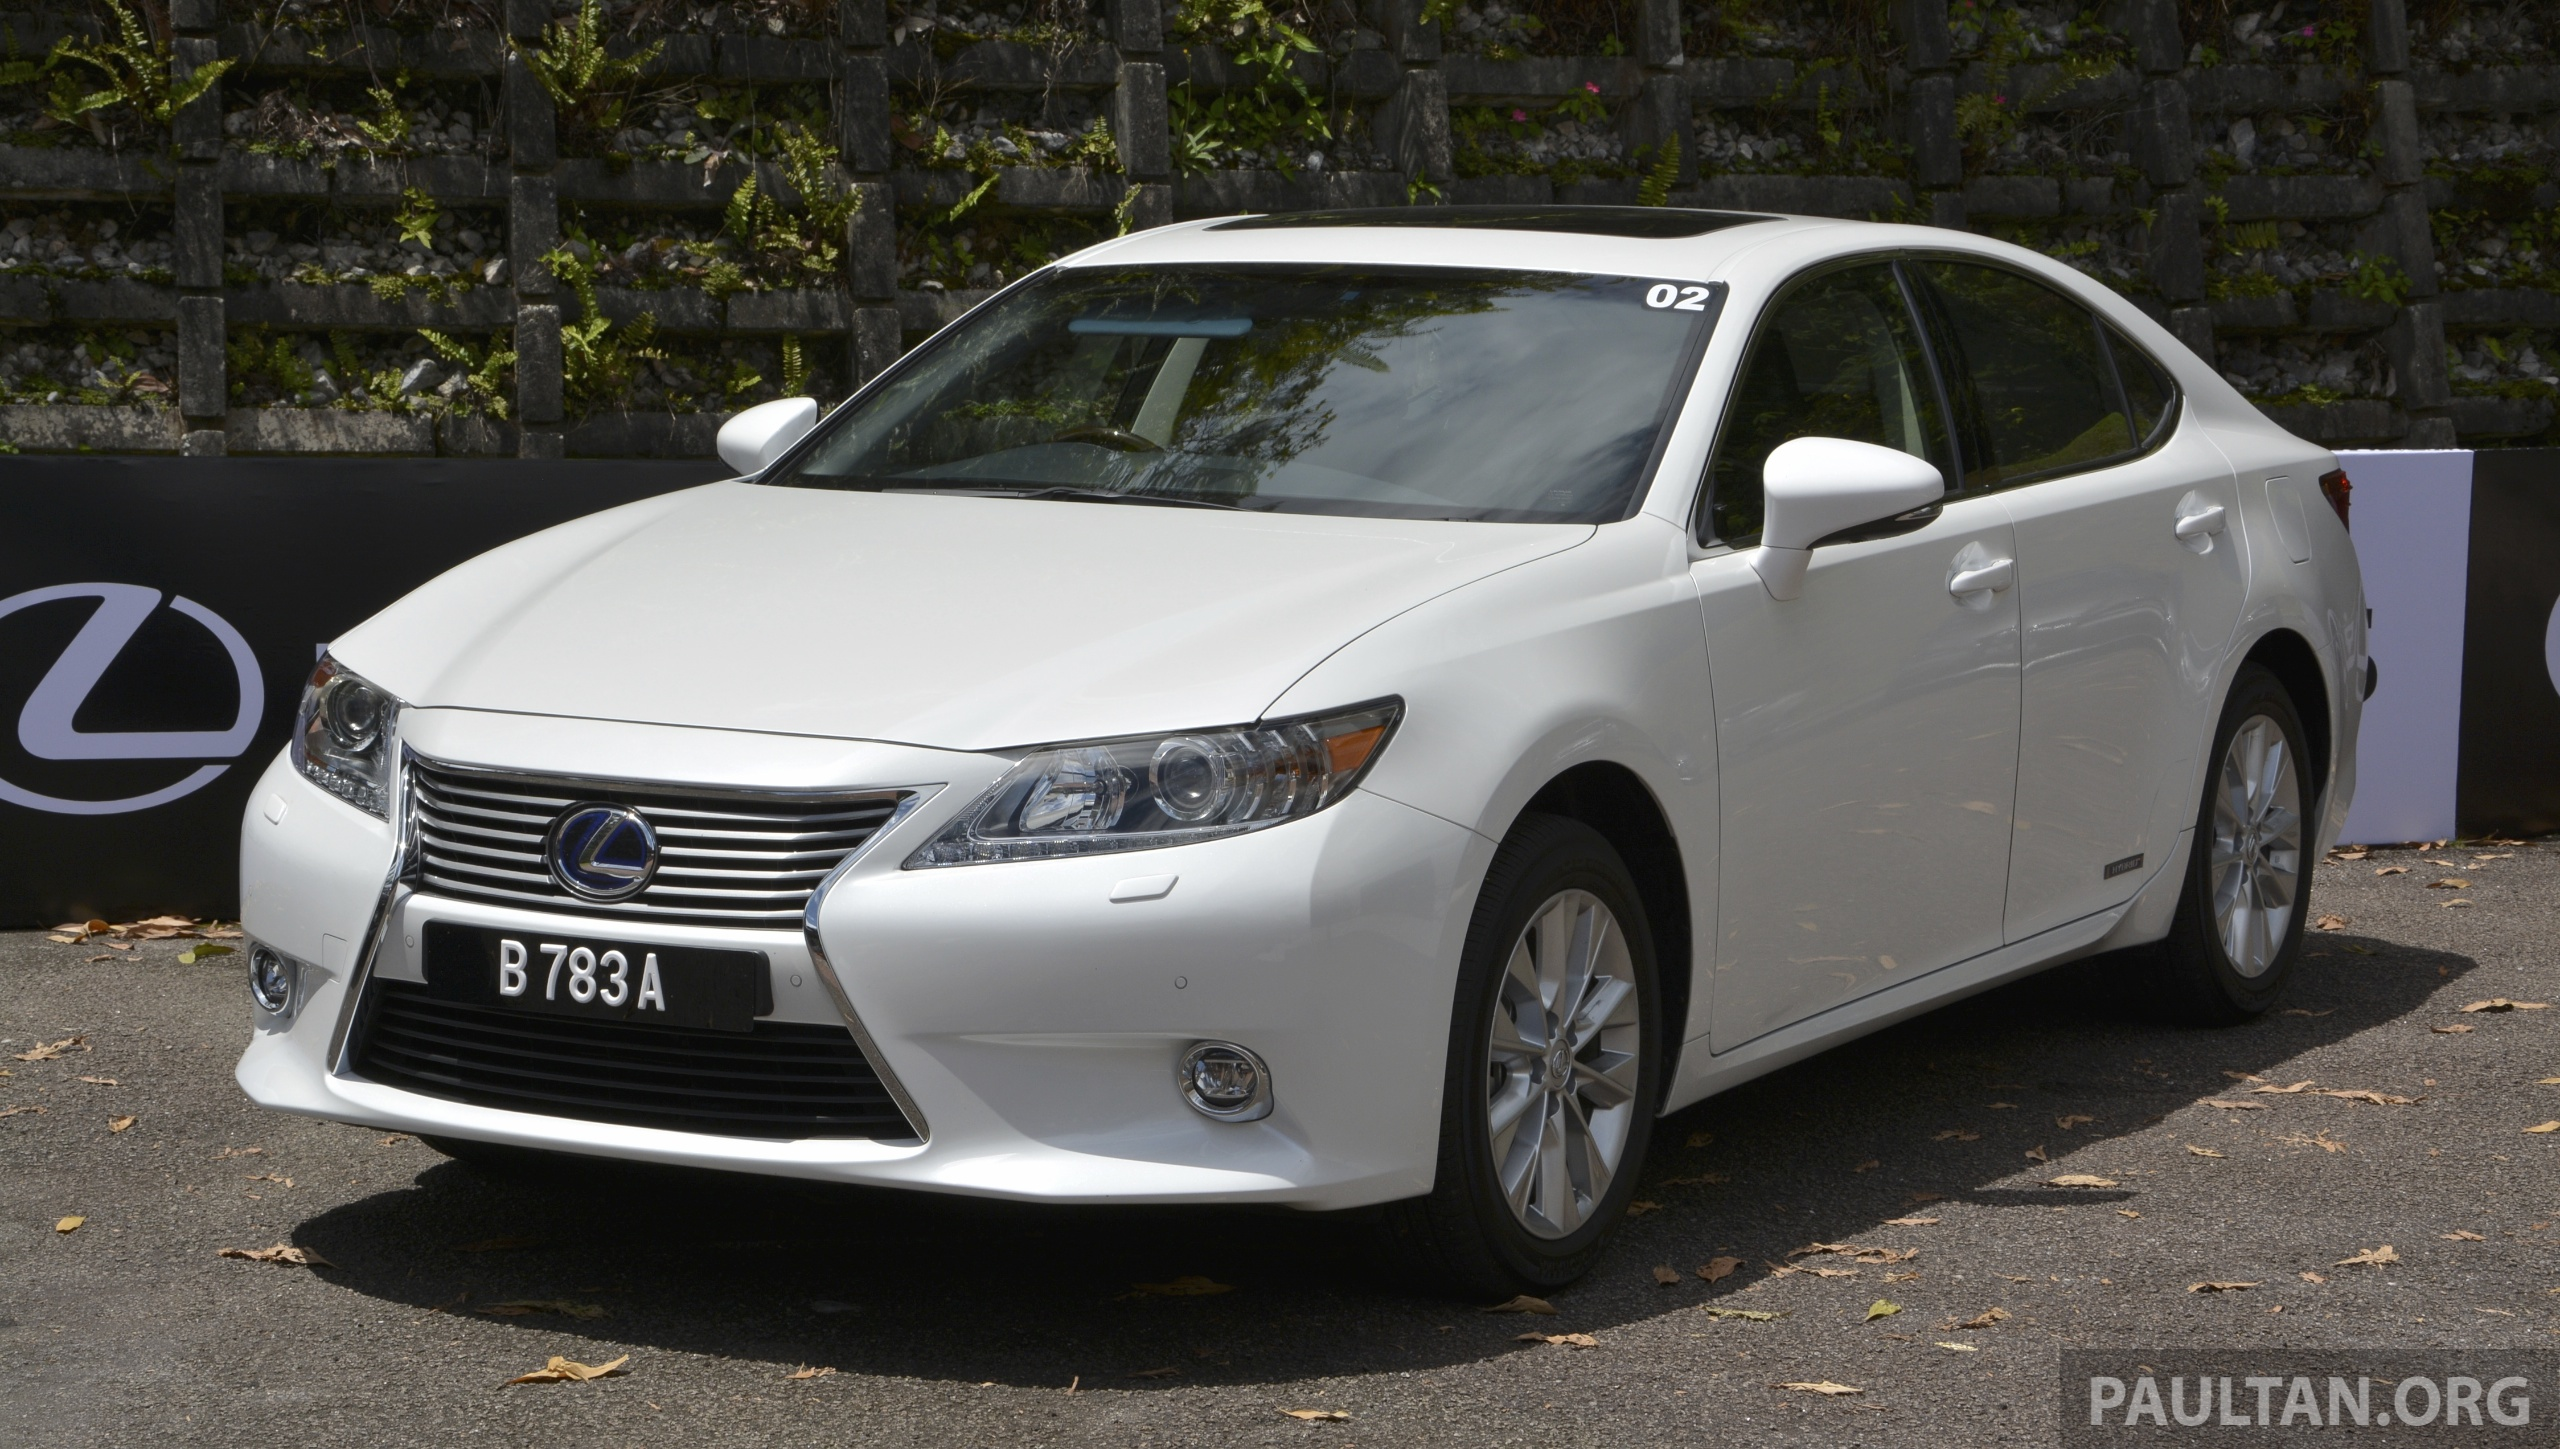 DRIVEN: 2013 Lexus ES 250 and 300h sampled Image 219445